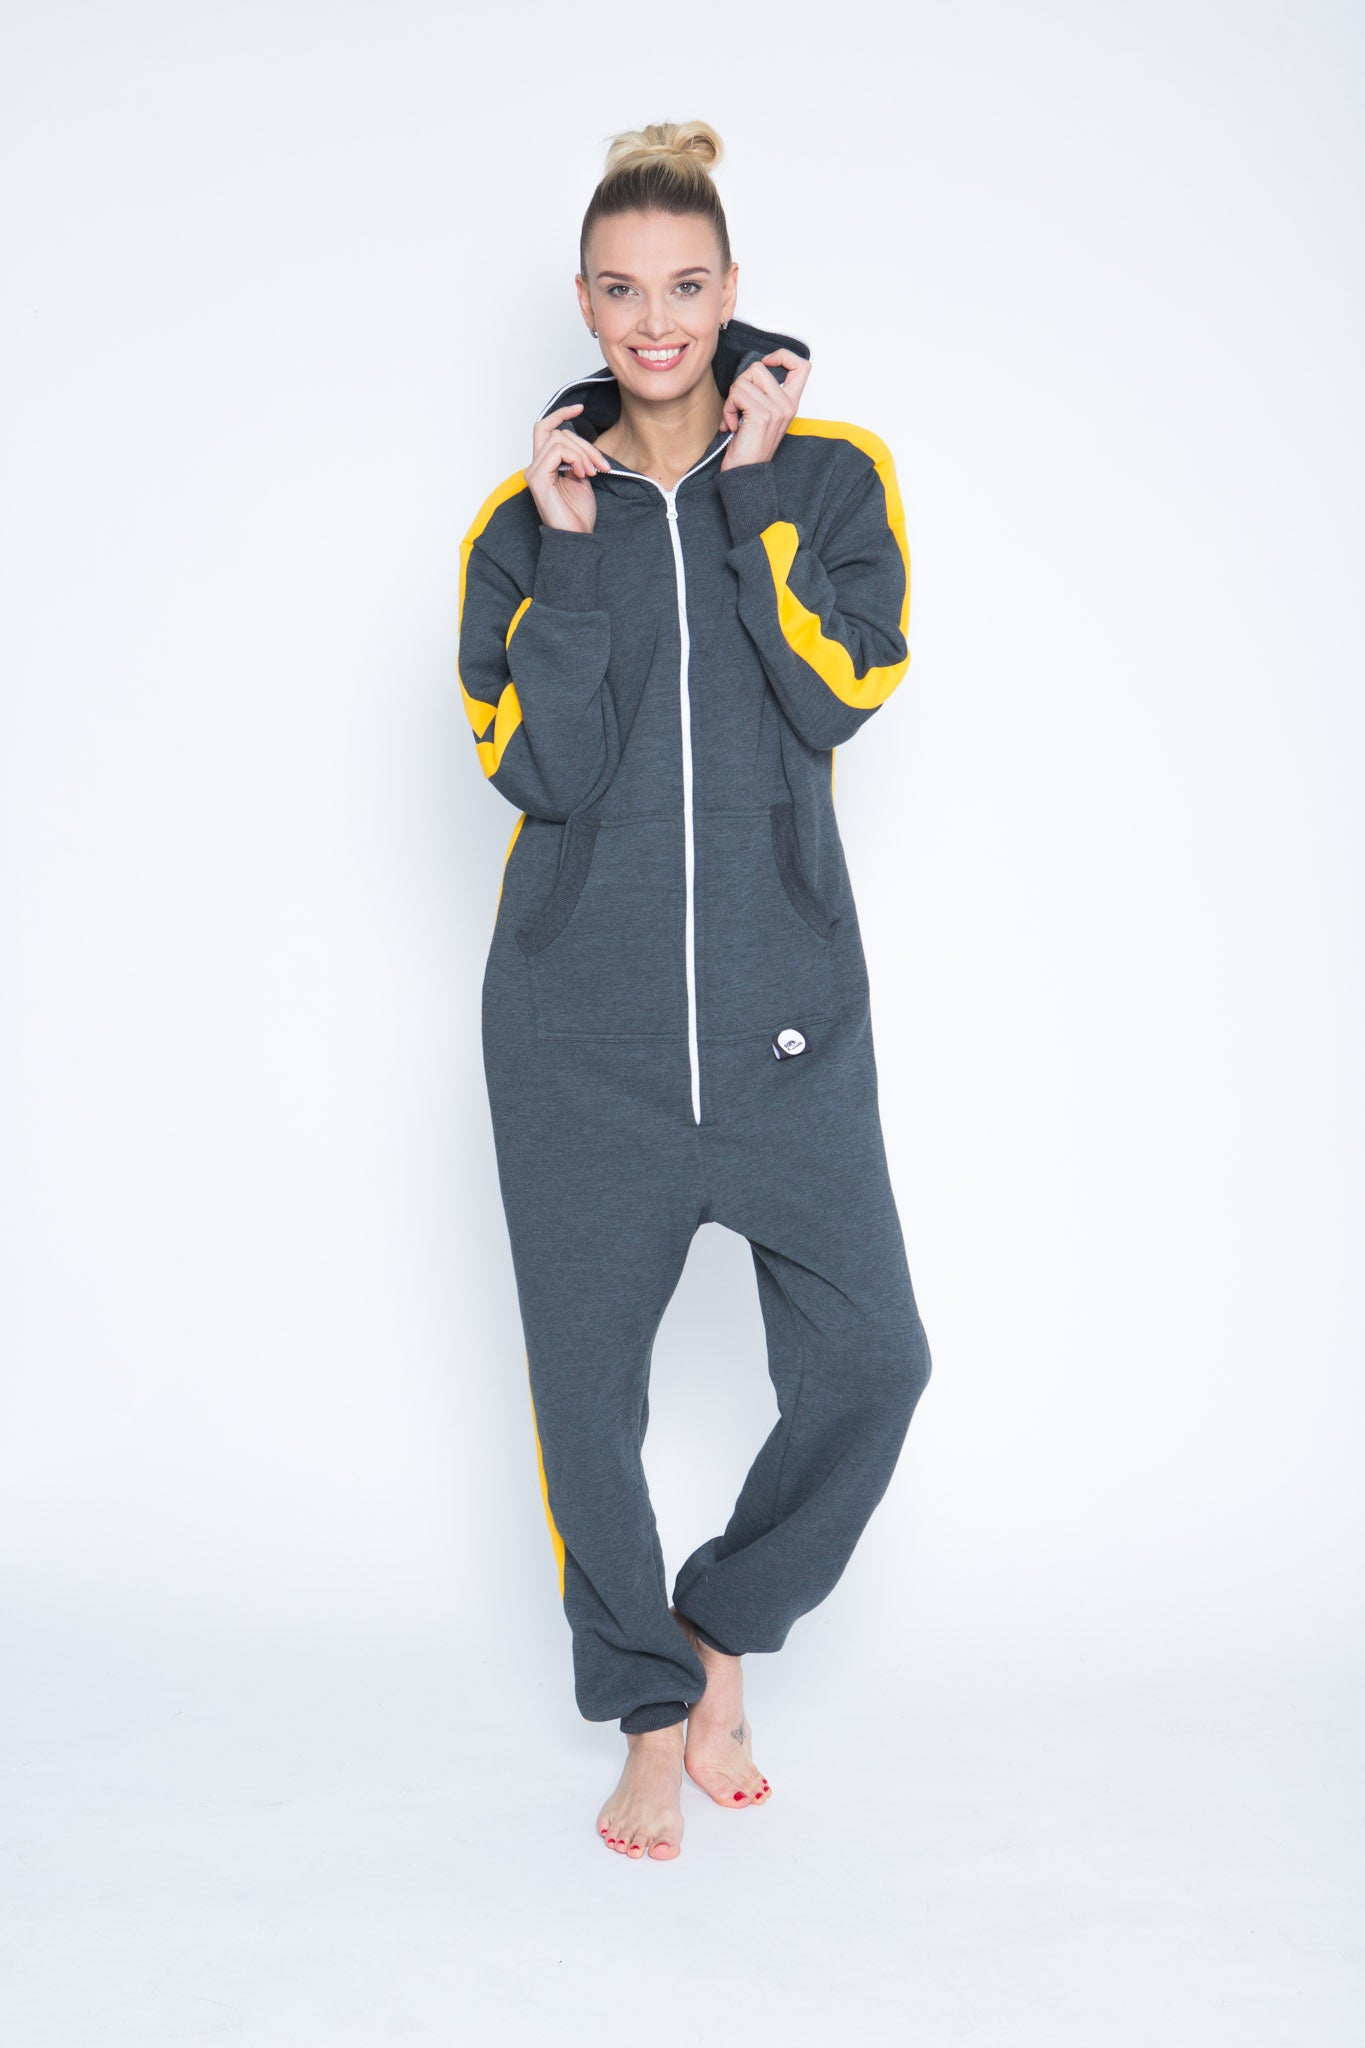 Sofa Killer dark grey onesie with yellow vertical lines